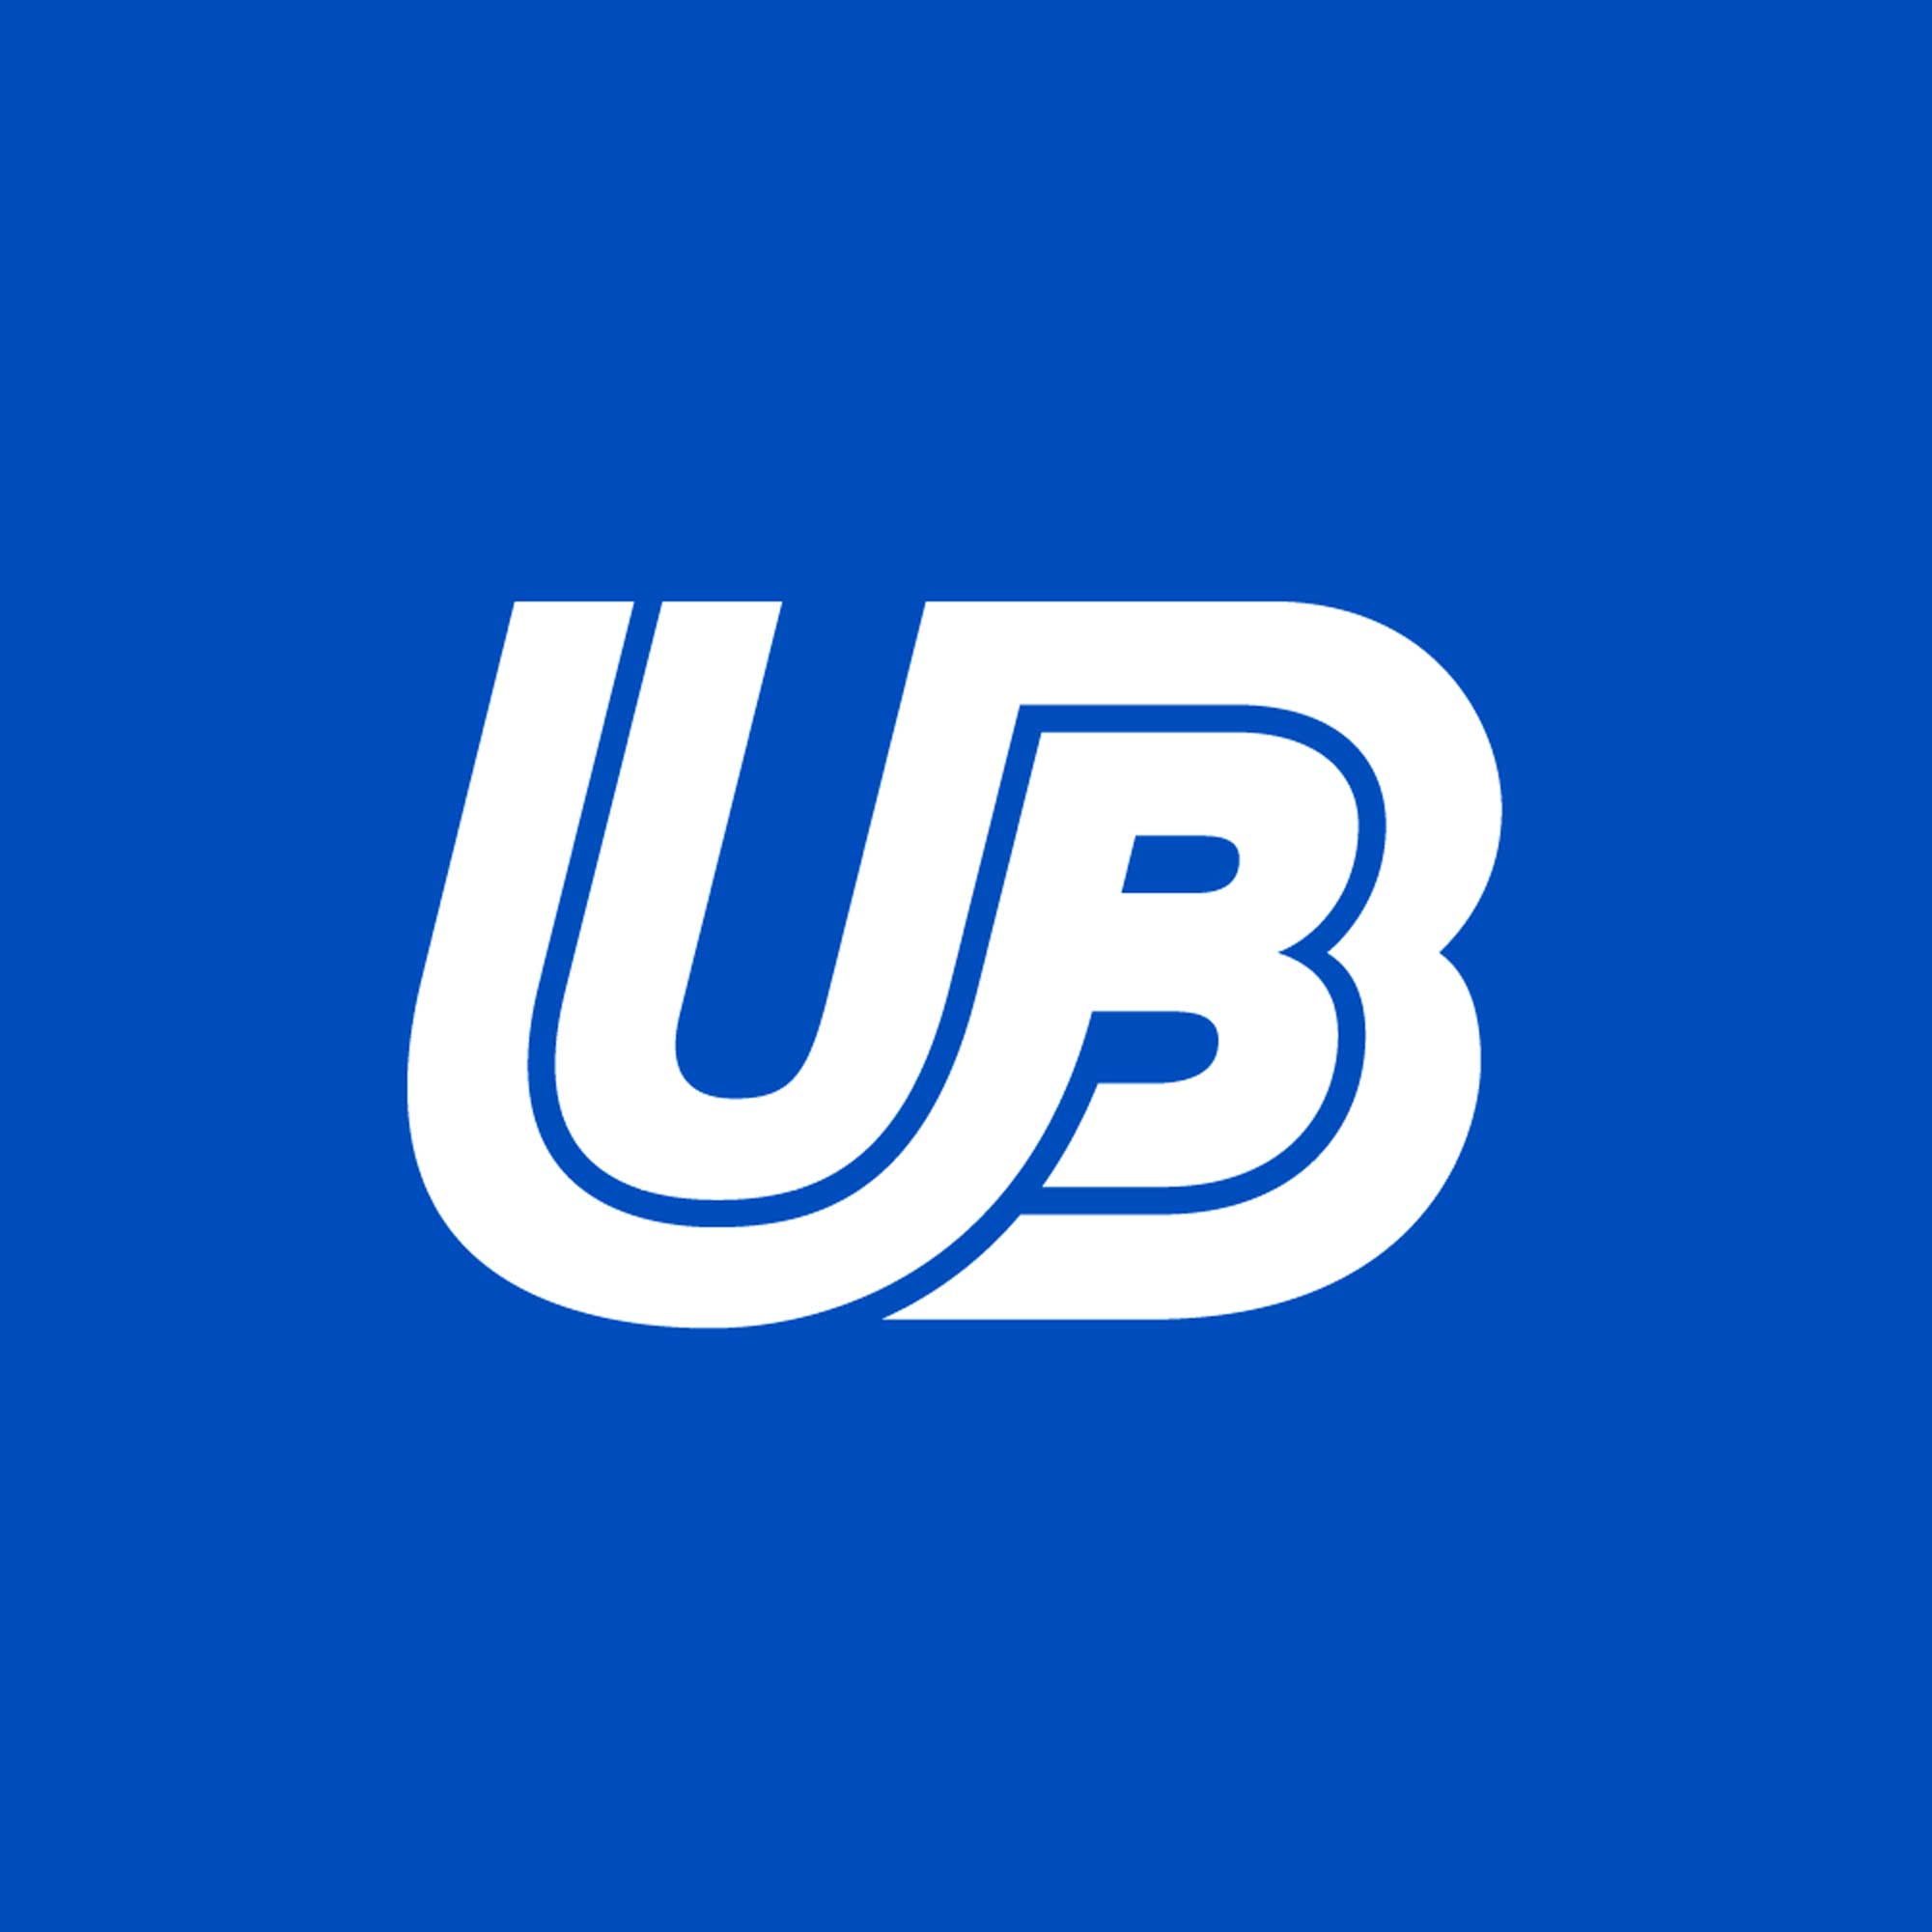 UB team to research new product design testing - Buffalo